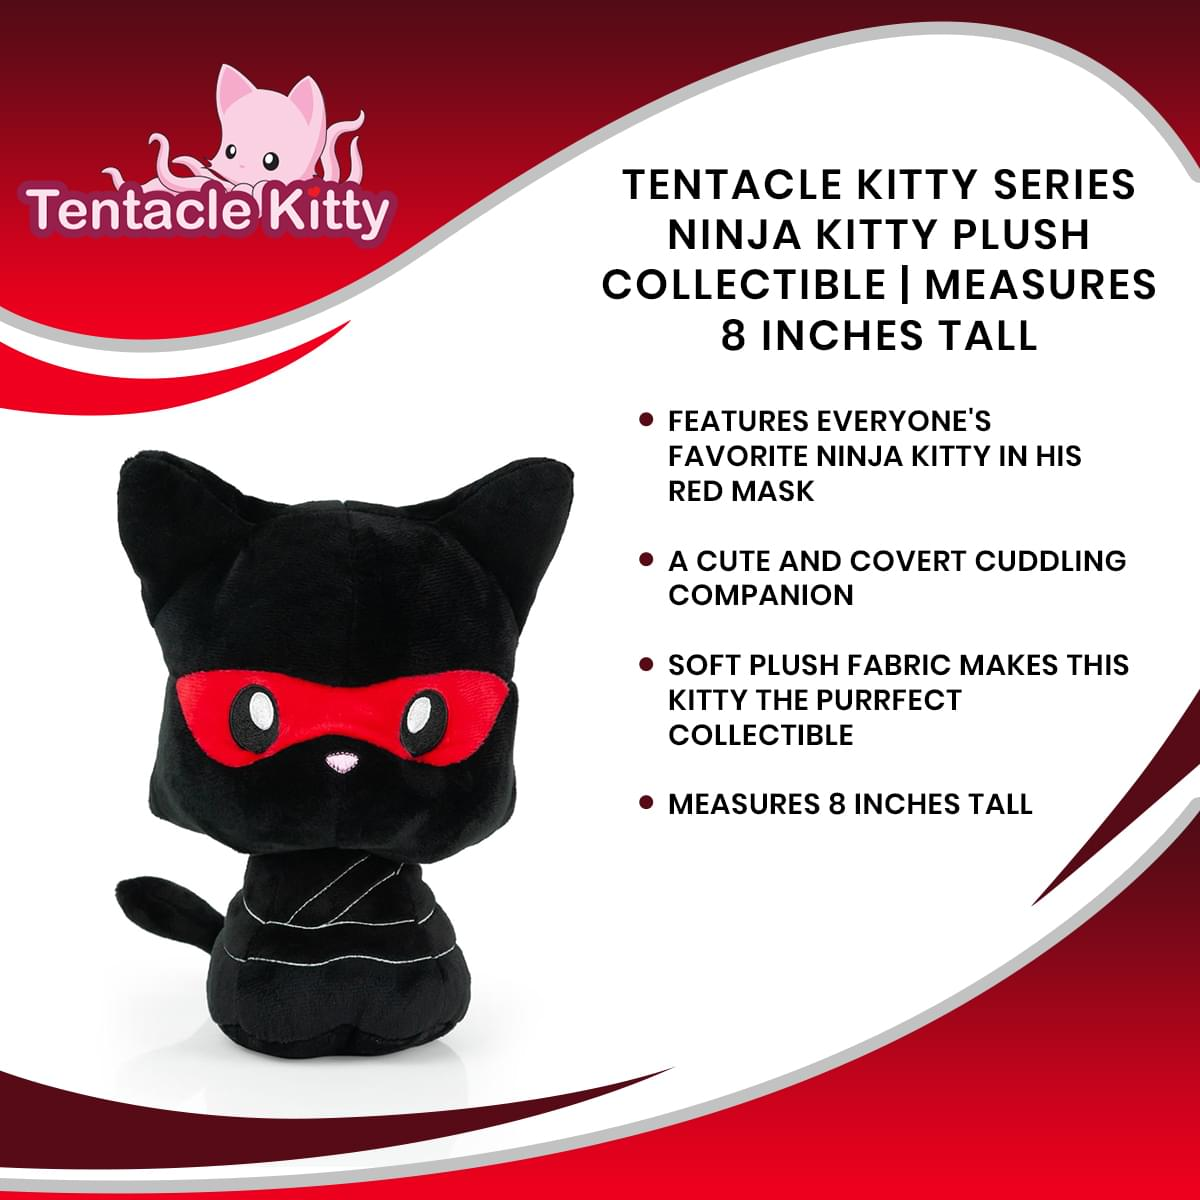 Tentacle Kitty 2nd Edition Ninja Kitty Plush Collectible | Measures 8 Inches Tall